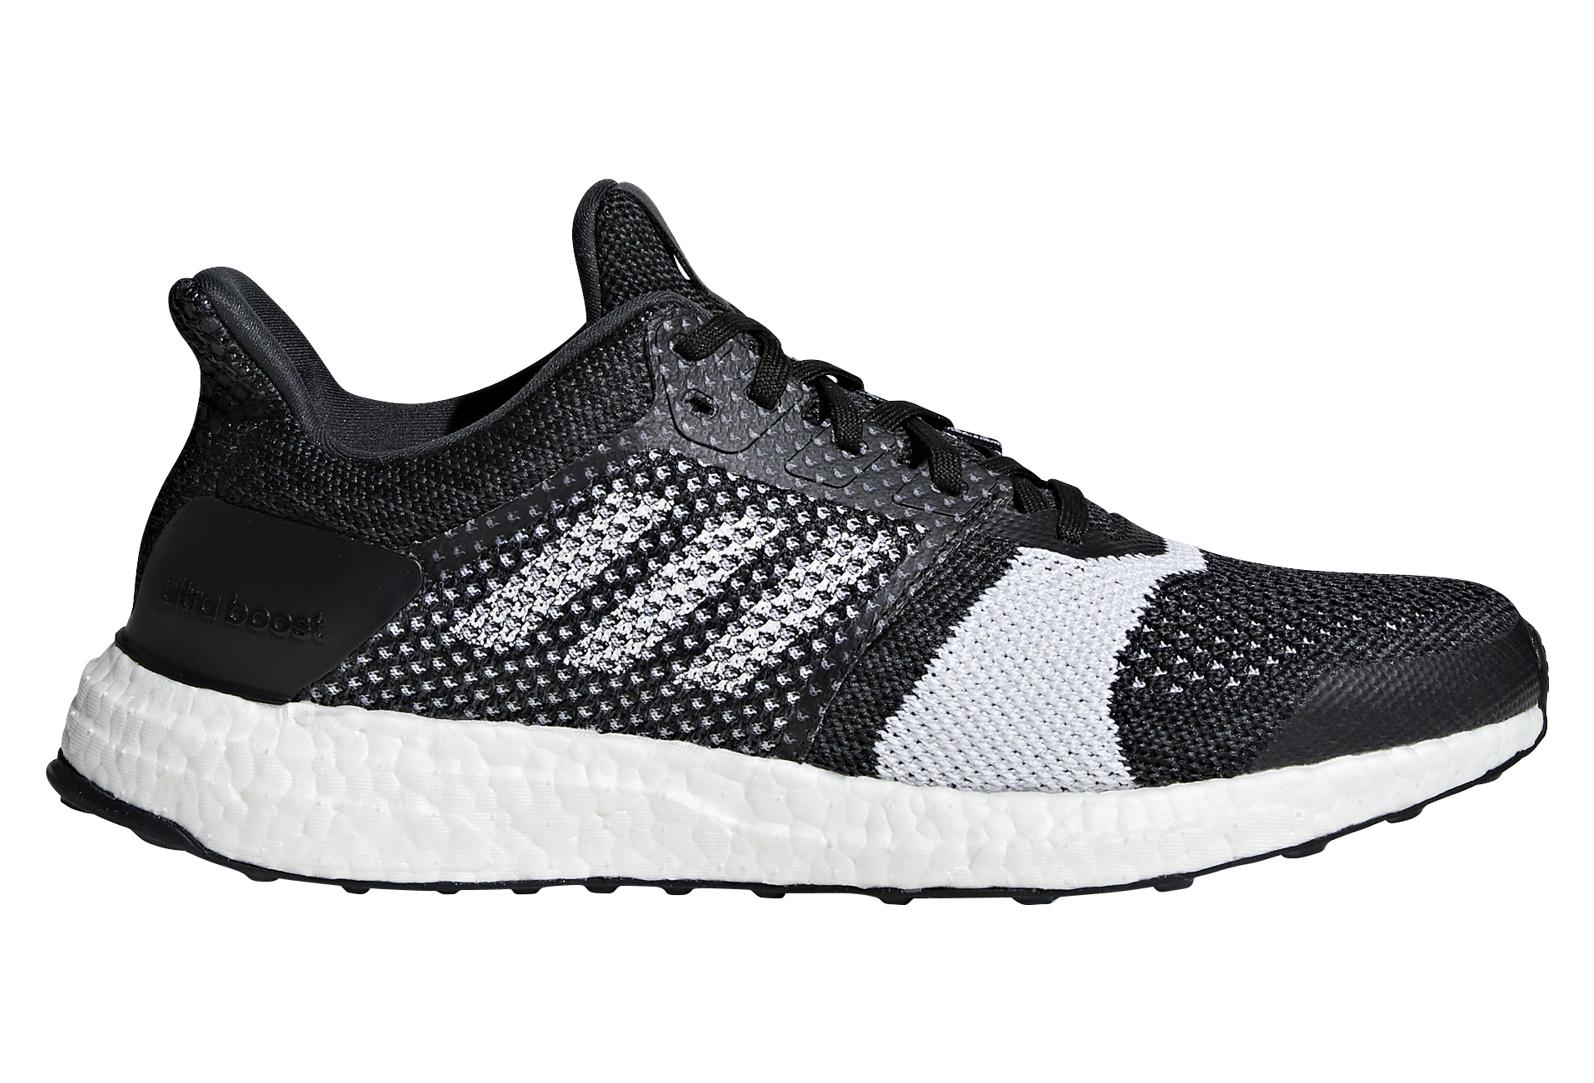 Adidas ULTRABOOST ST Shoes Black